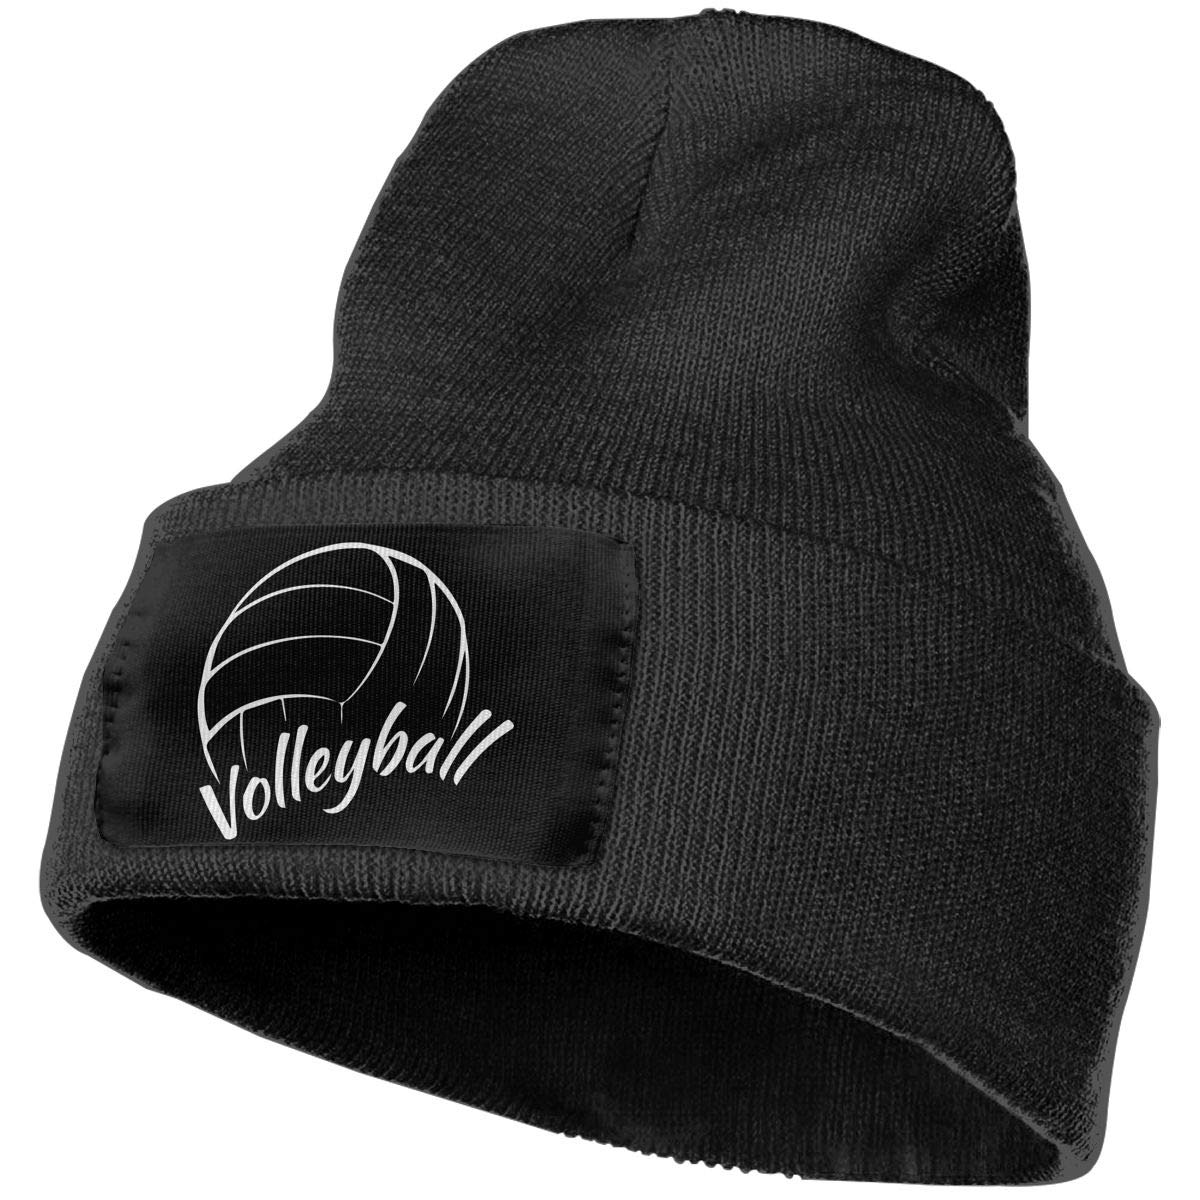 Mens Womens 100/% Acrylic Knitting Hat Cap Love is Volleyball Soft Skull Cap